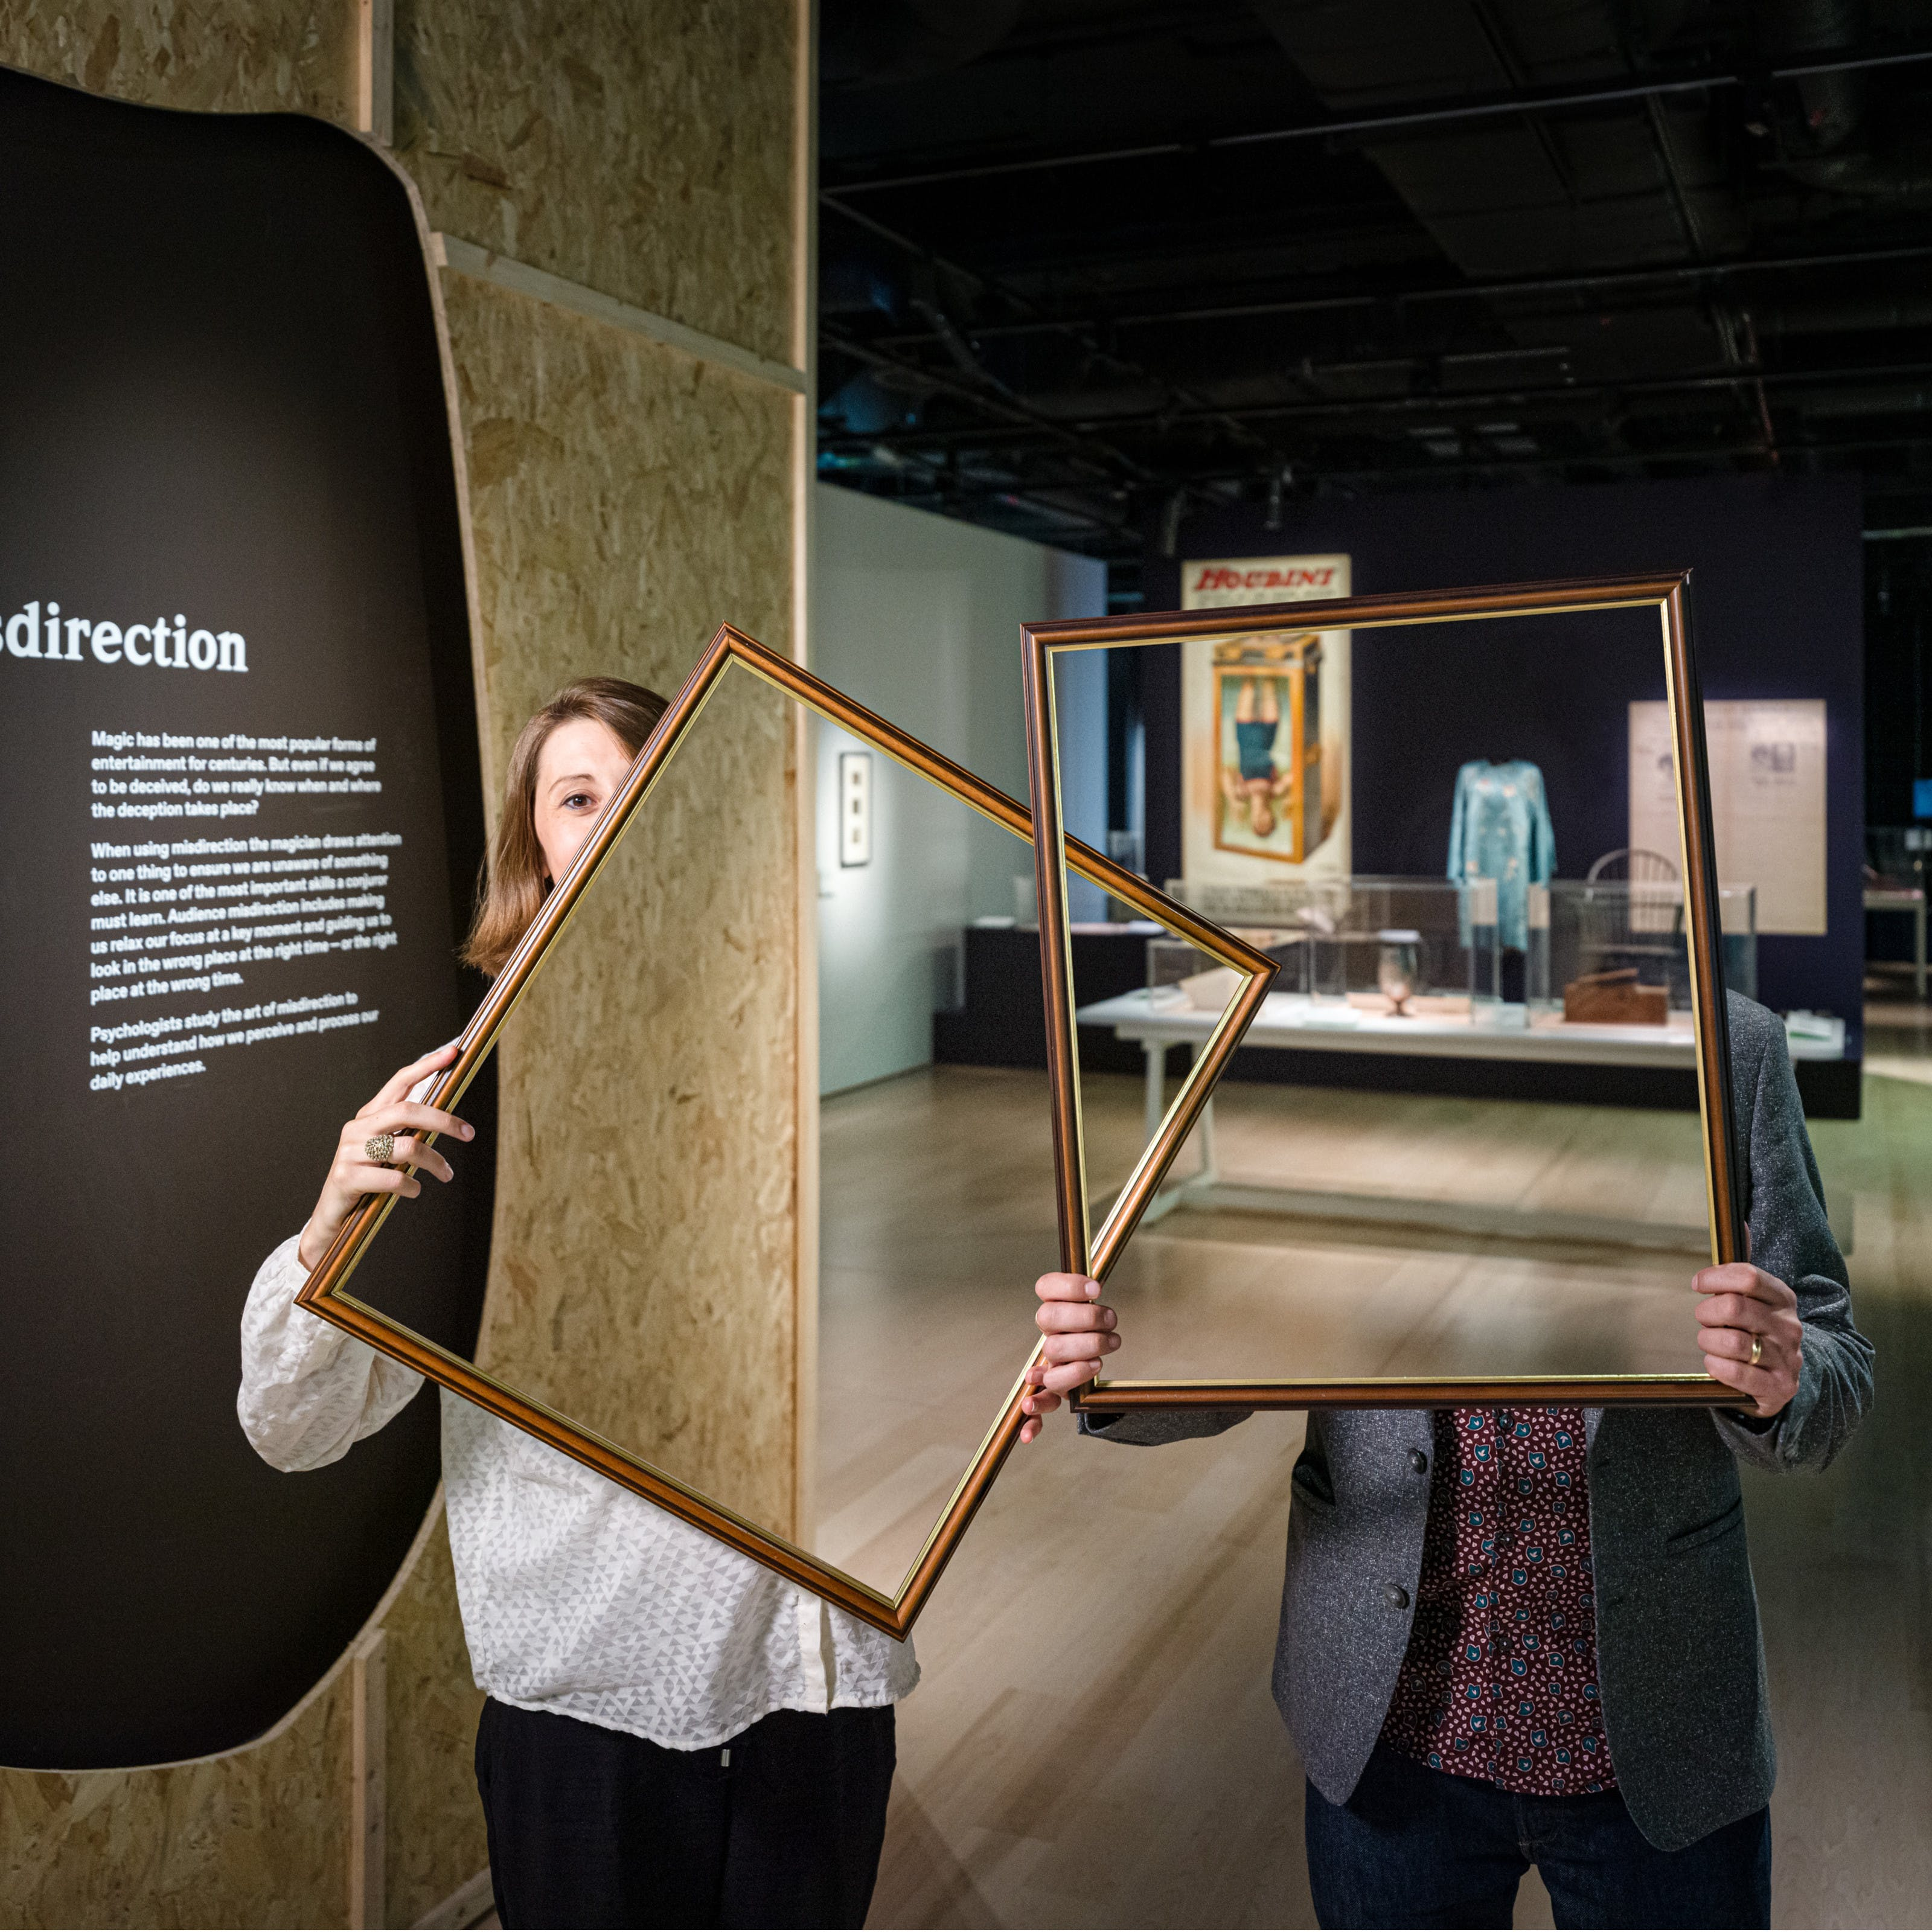 """Photograph of a woman and a man in a dark gallery space holding up picture frames in front of their bodies and parts of their faces. Within the picture frame you can see straight through them, as if their bodies and faces have disappeared. In the background you can see a large historical poster and exhibitor display cases. On the left is a text panel titled, """"Misdirection""""."""